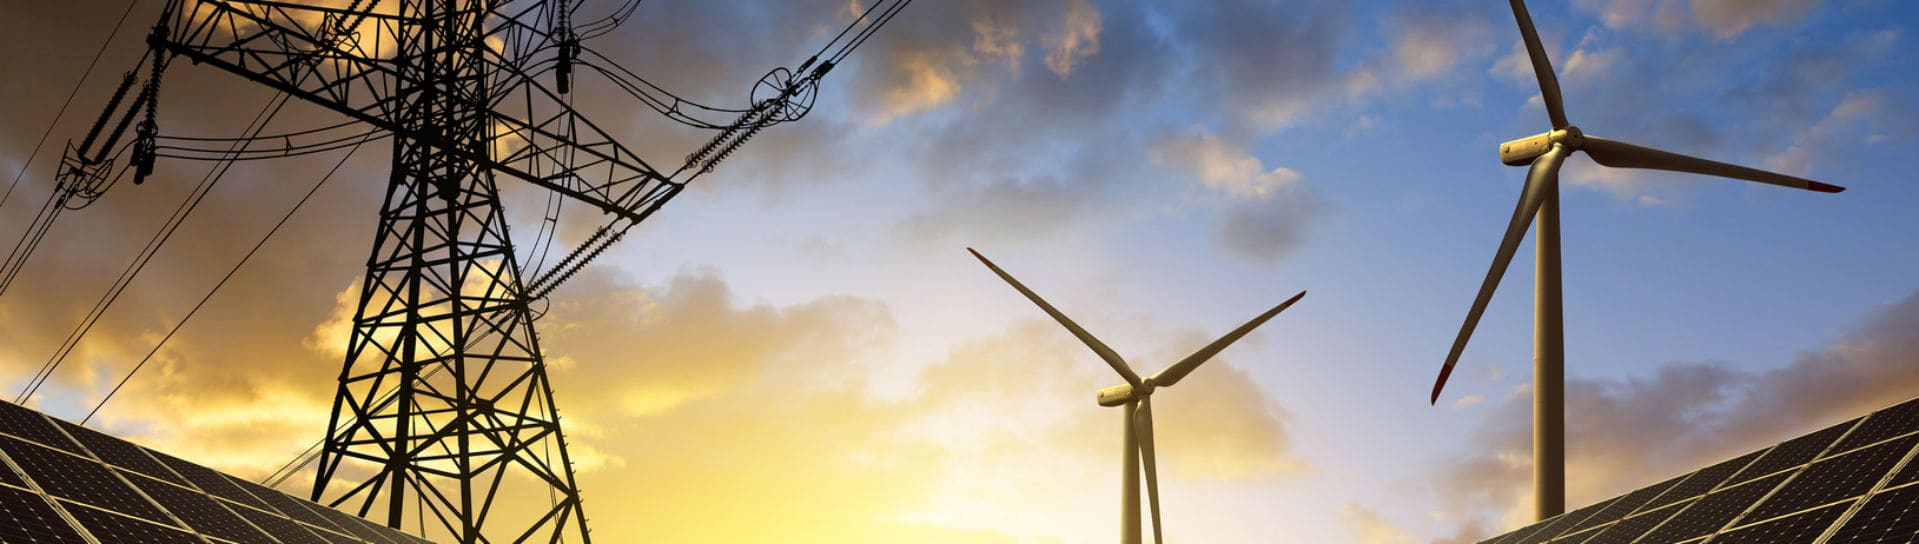 Branches - Energy & Utilities - Mainnovation